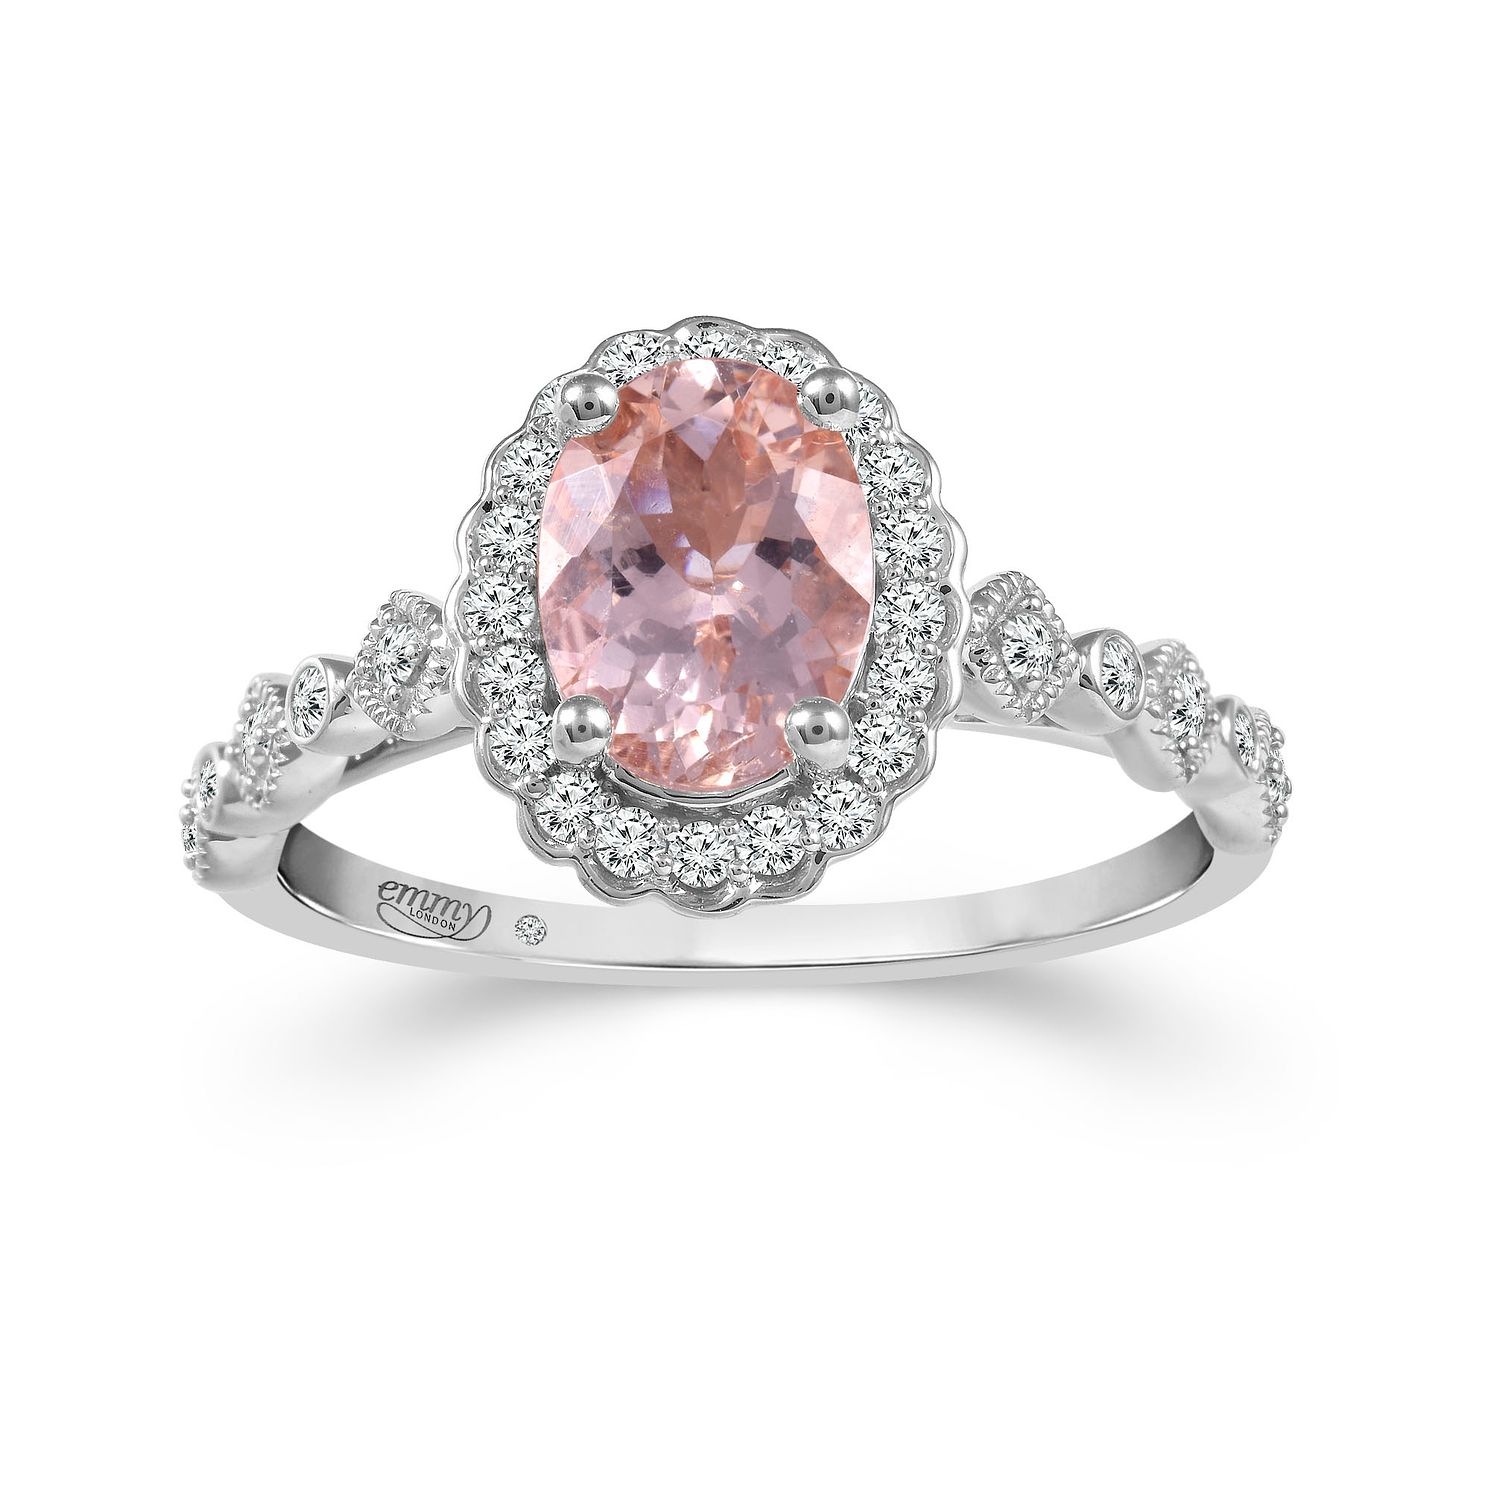 Emmy London Platinum Morganite 1/5ct Diamond Ring - Product number 6103847